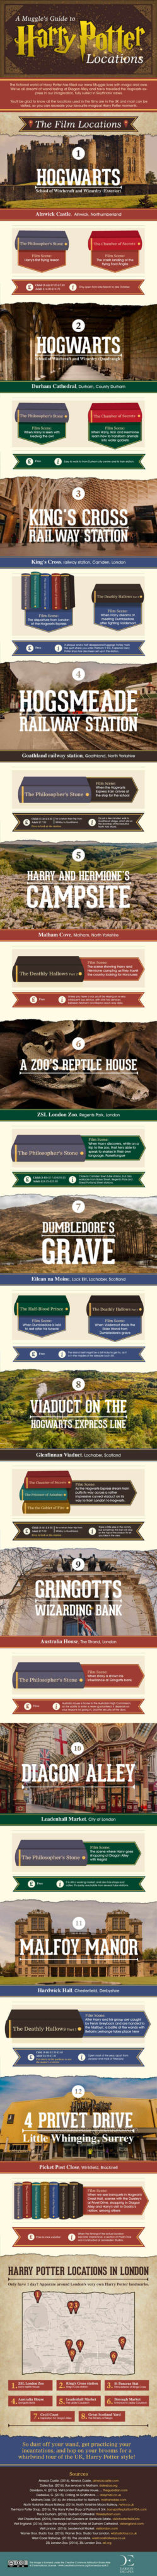 Infographic A Muggle Guide to Visiting Harry Potter Locations